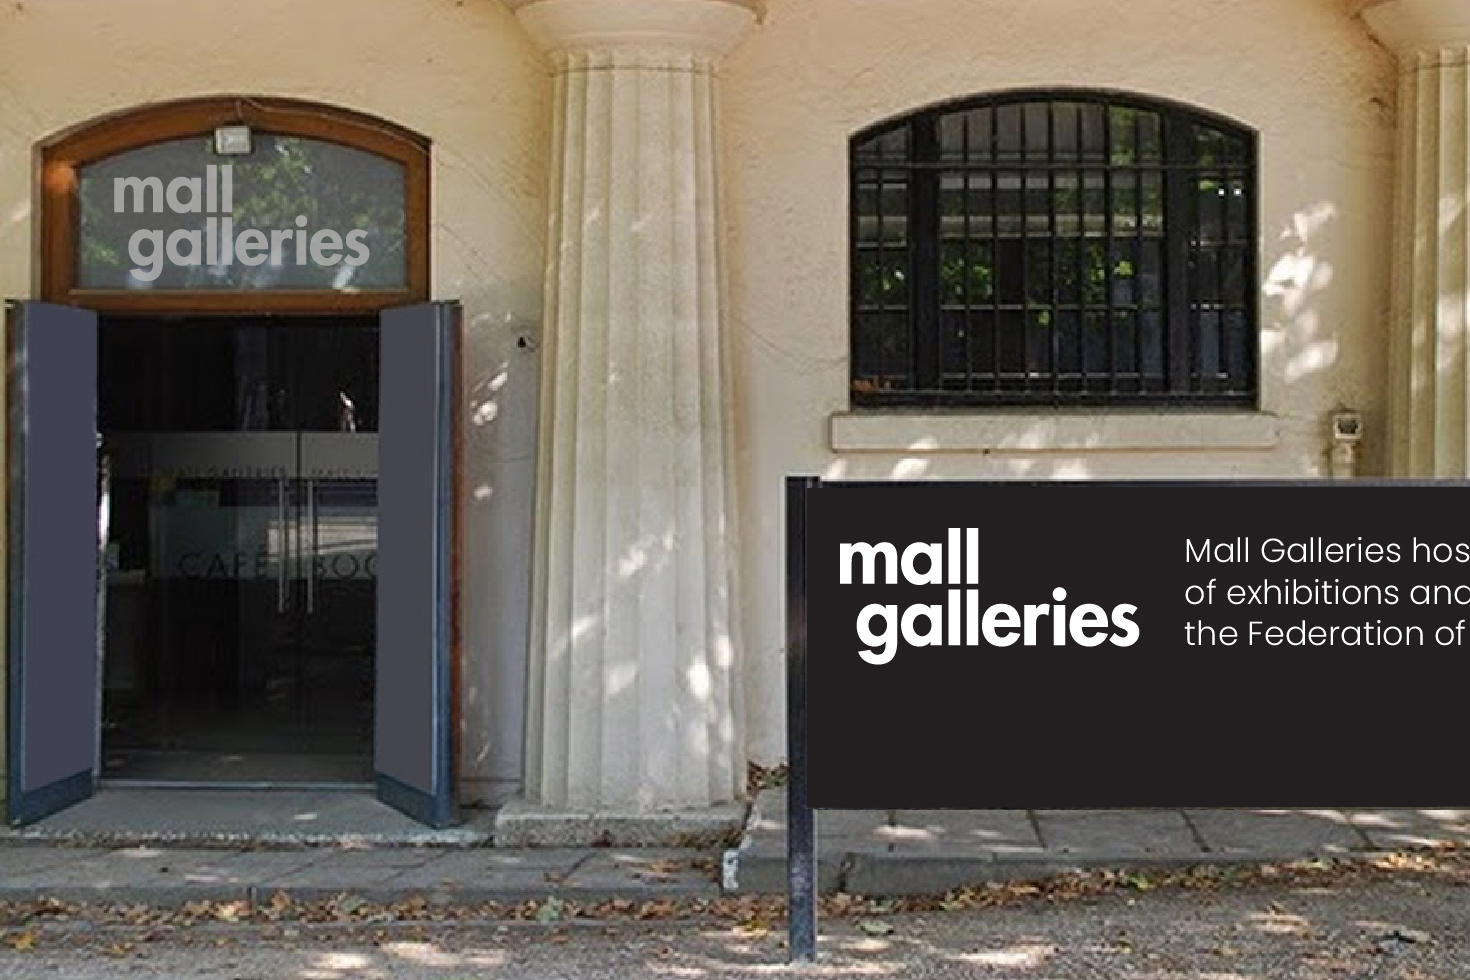 Mall Galleries signage